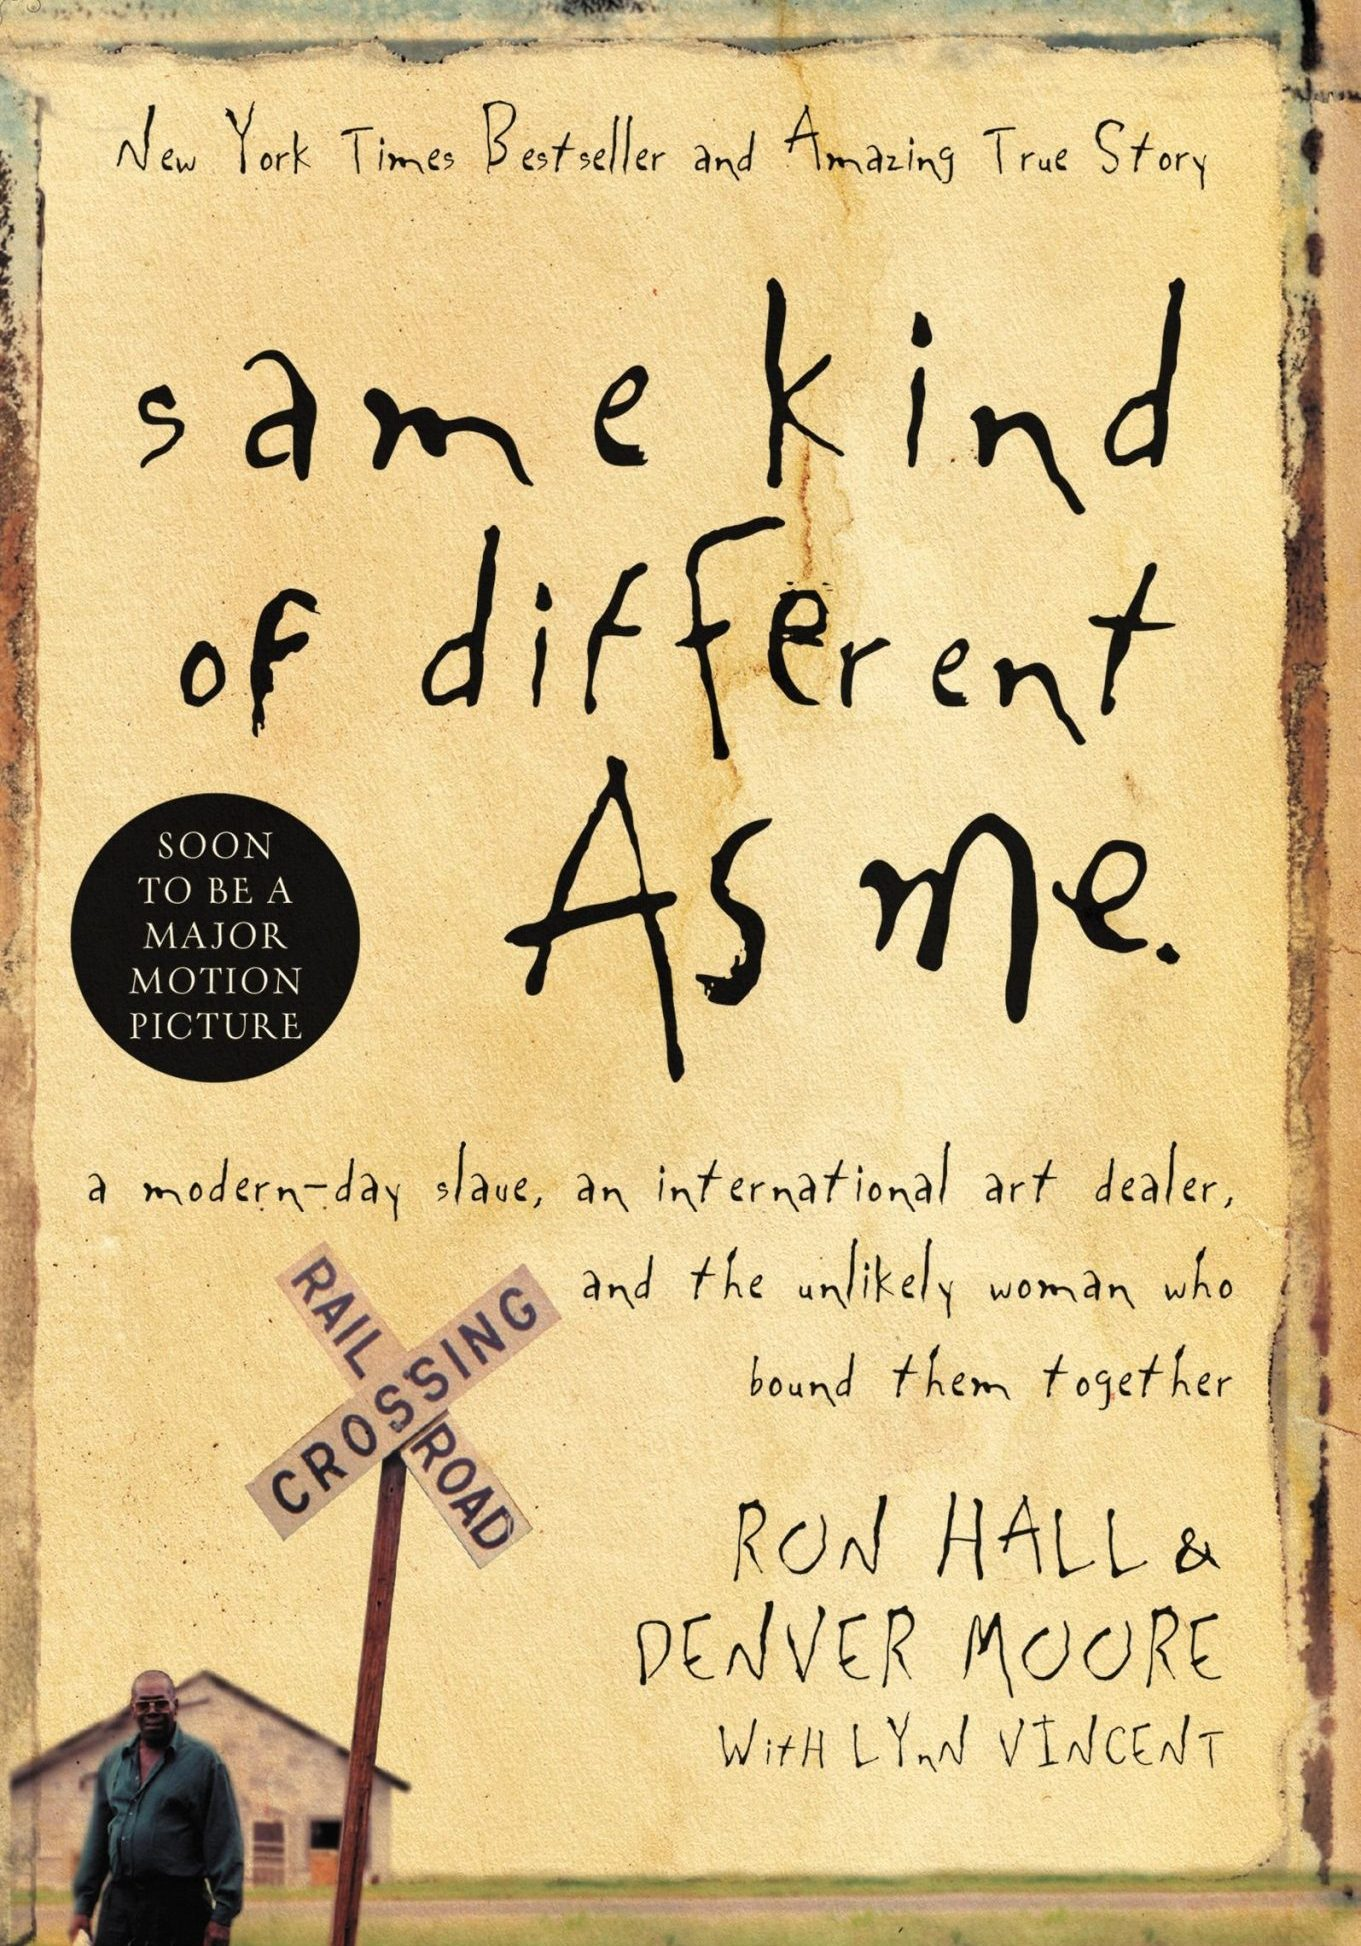 Hall-Moore - Same Kind of Different as Me